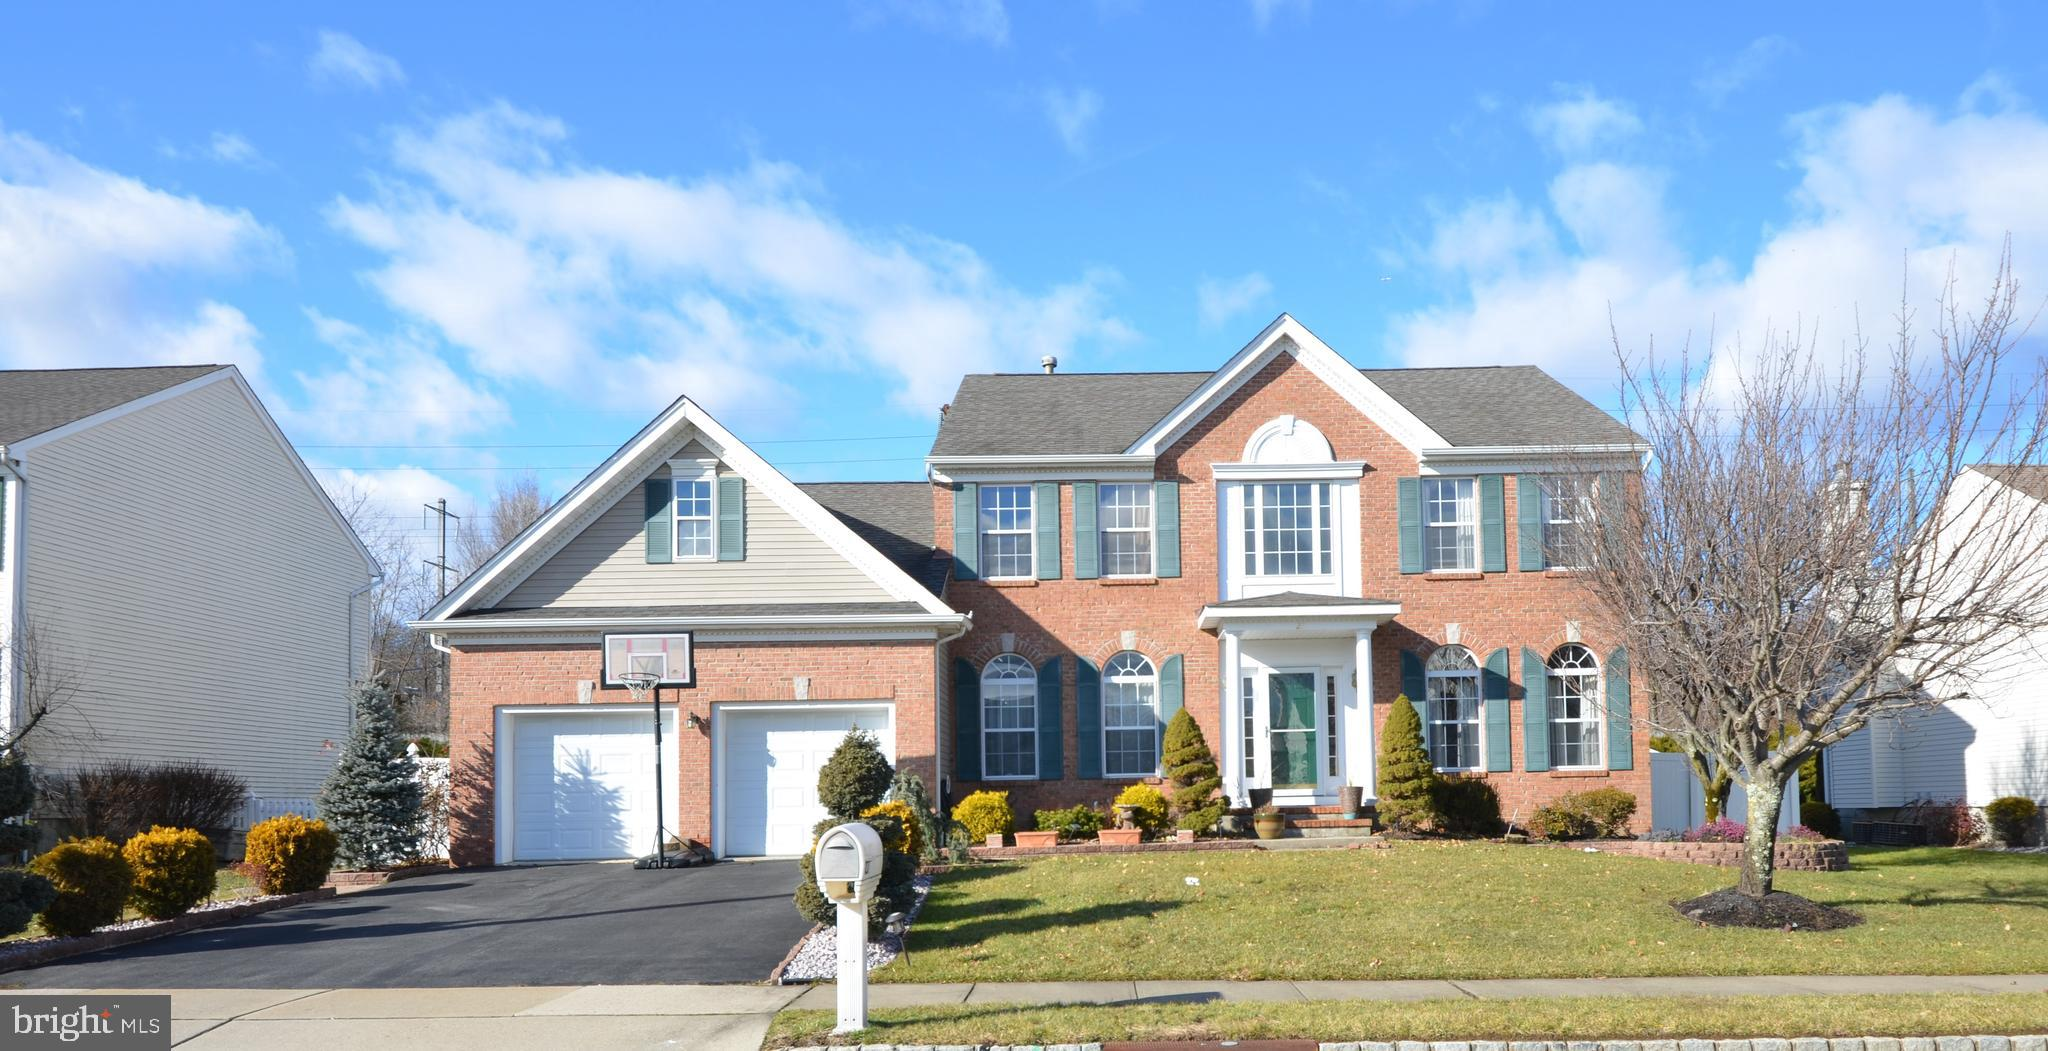 27 KELLY WAY, MONMOUTH JUNCTION, NJ 08852